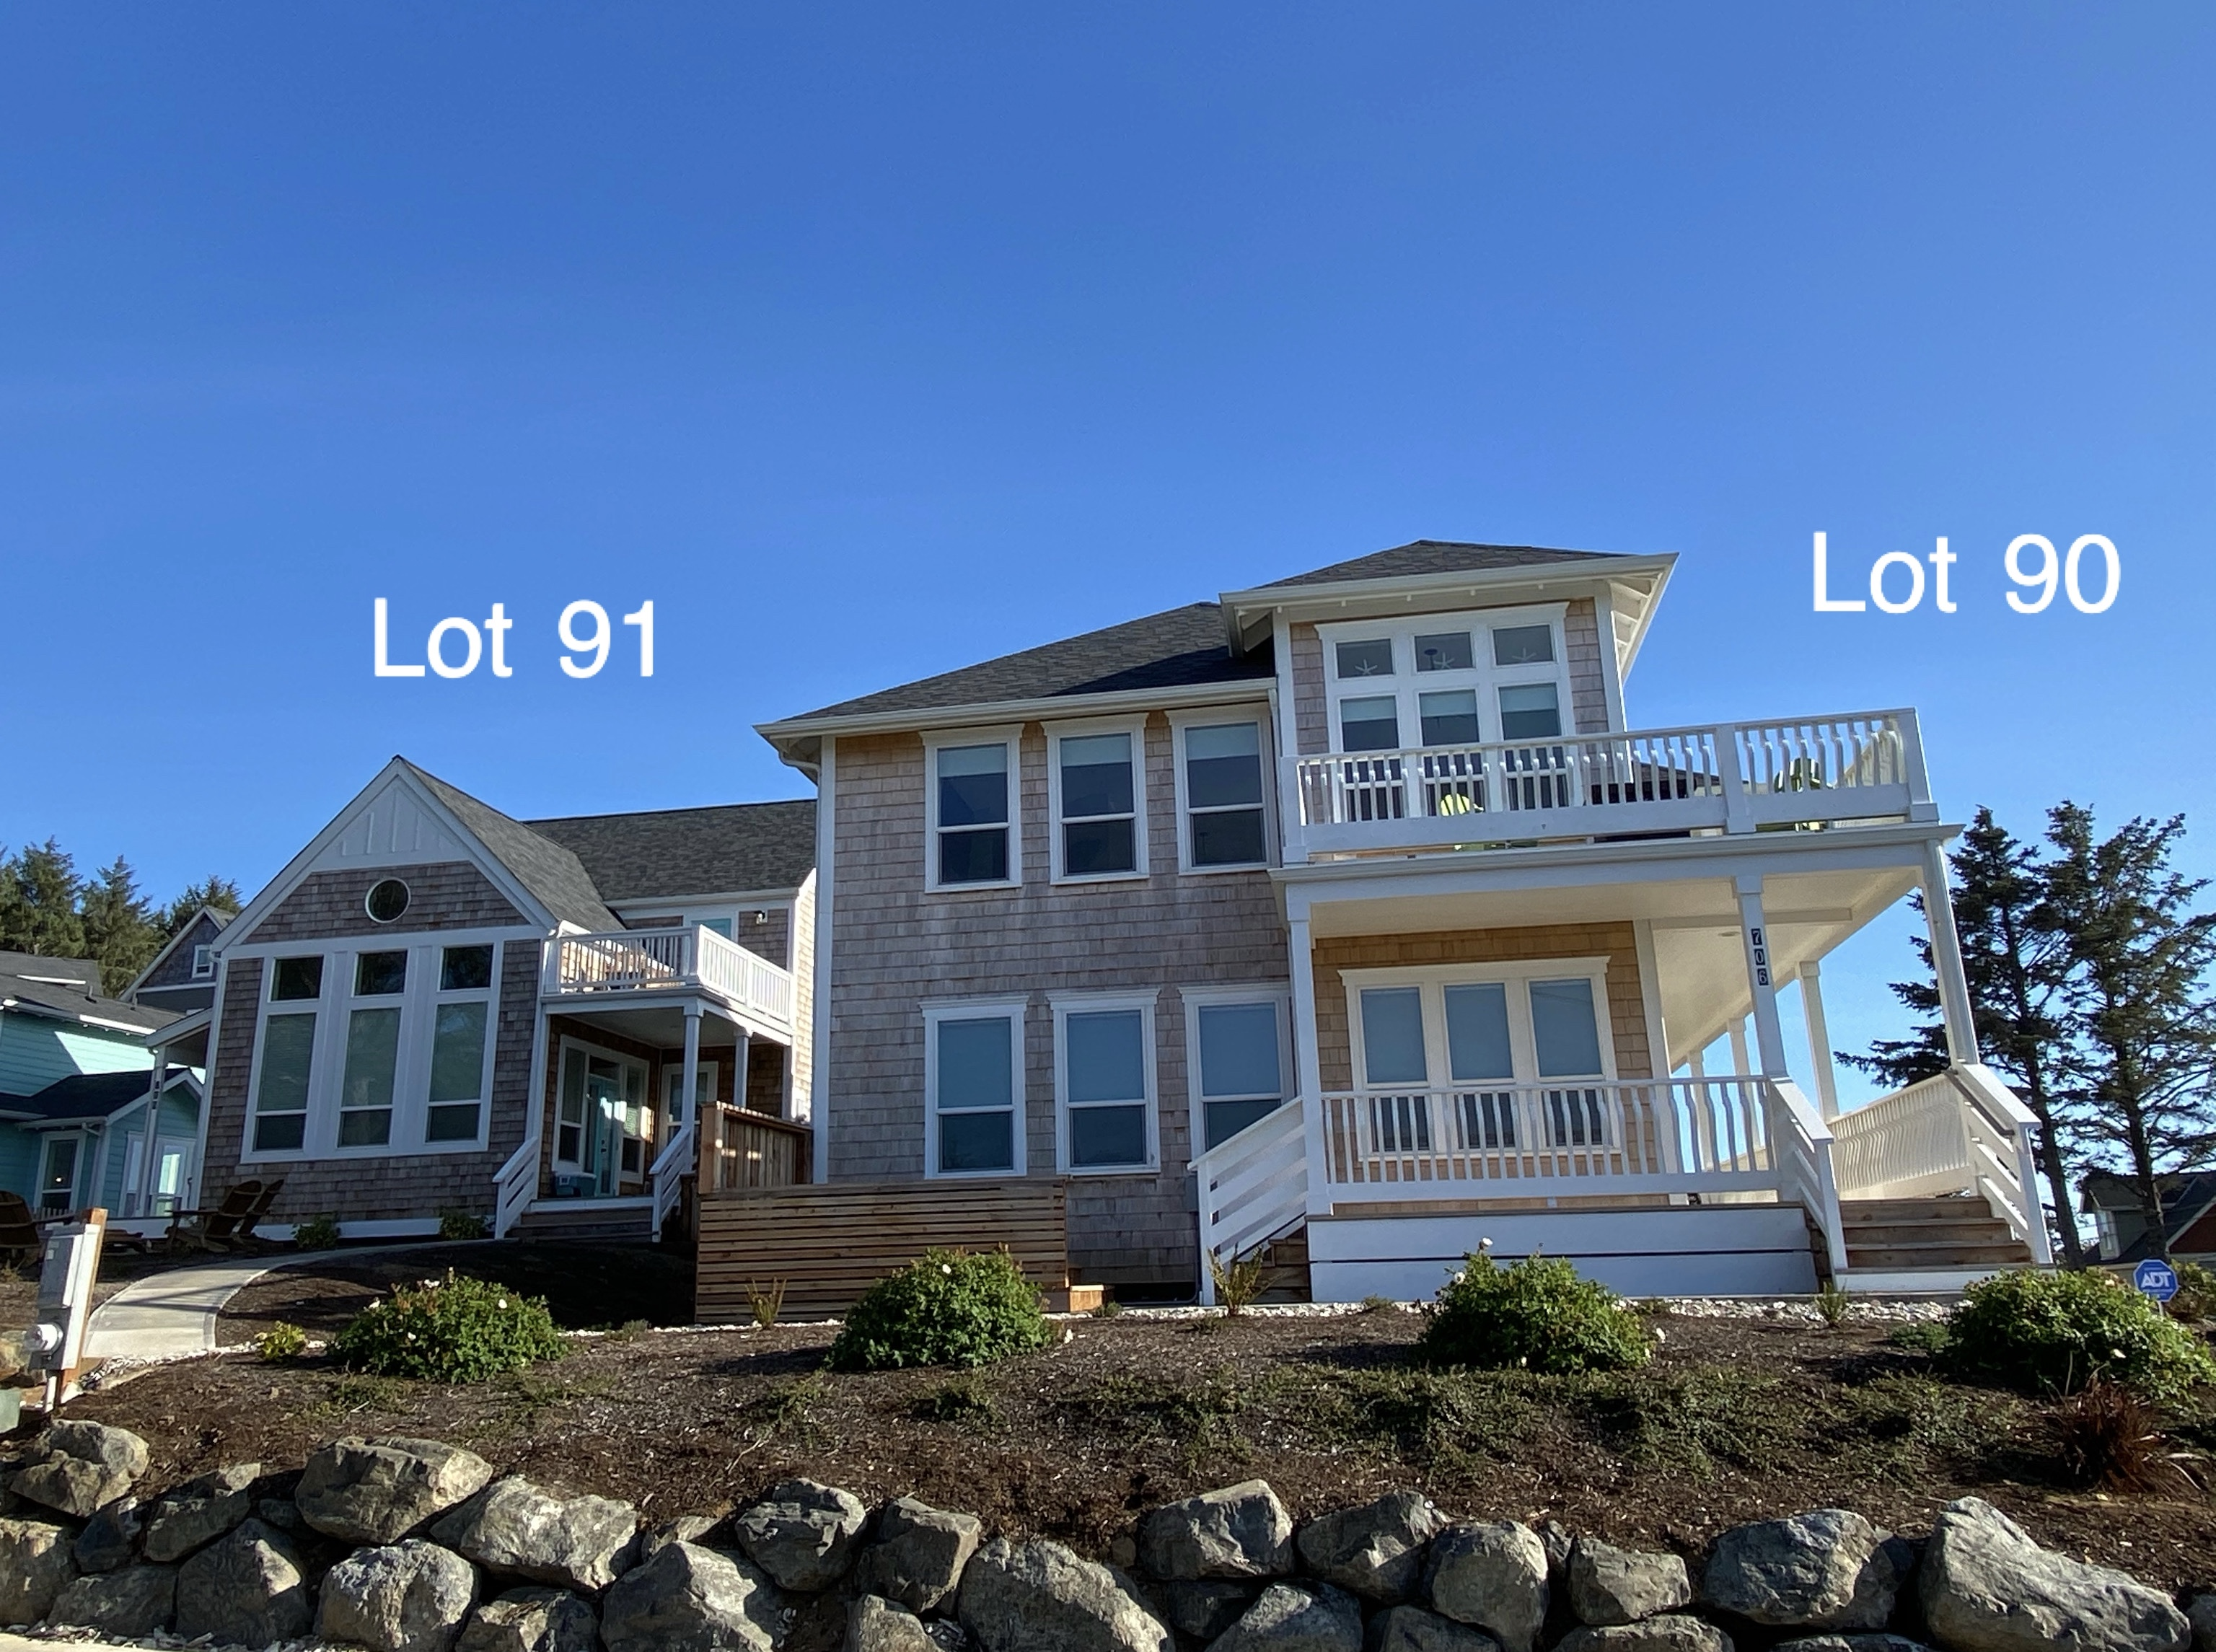 Lot 90 front